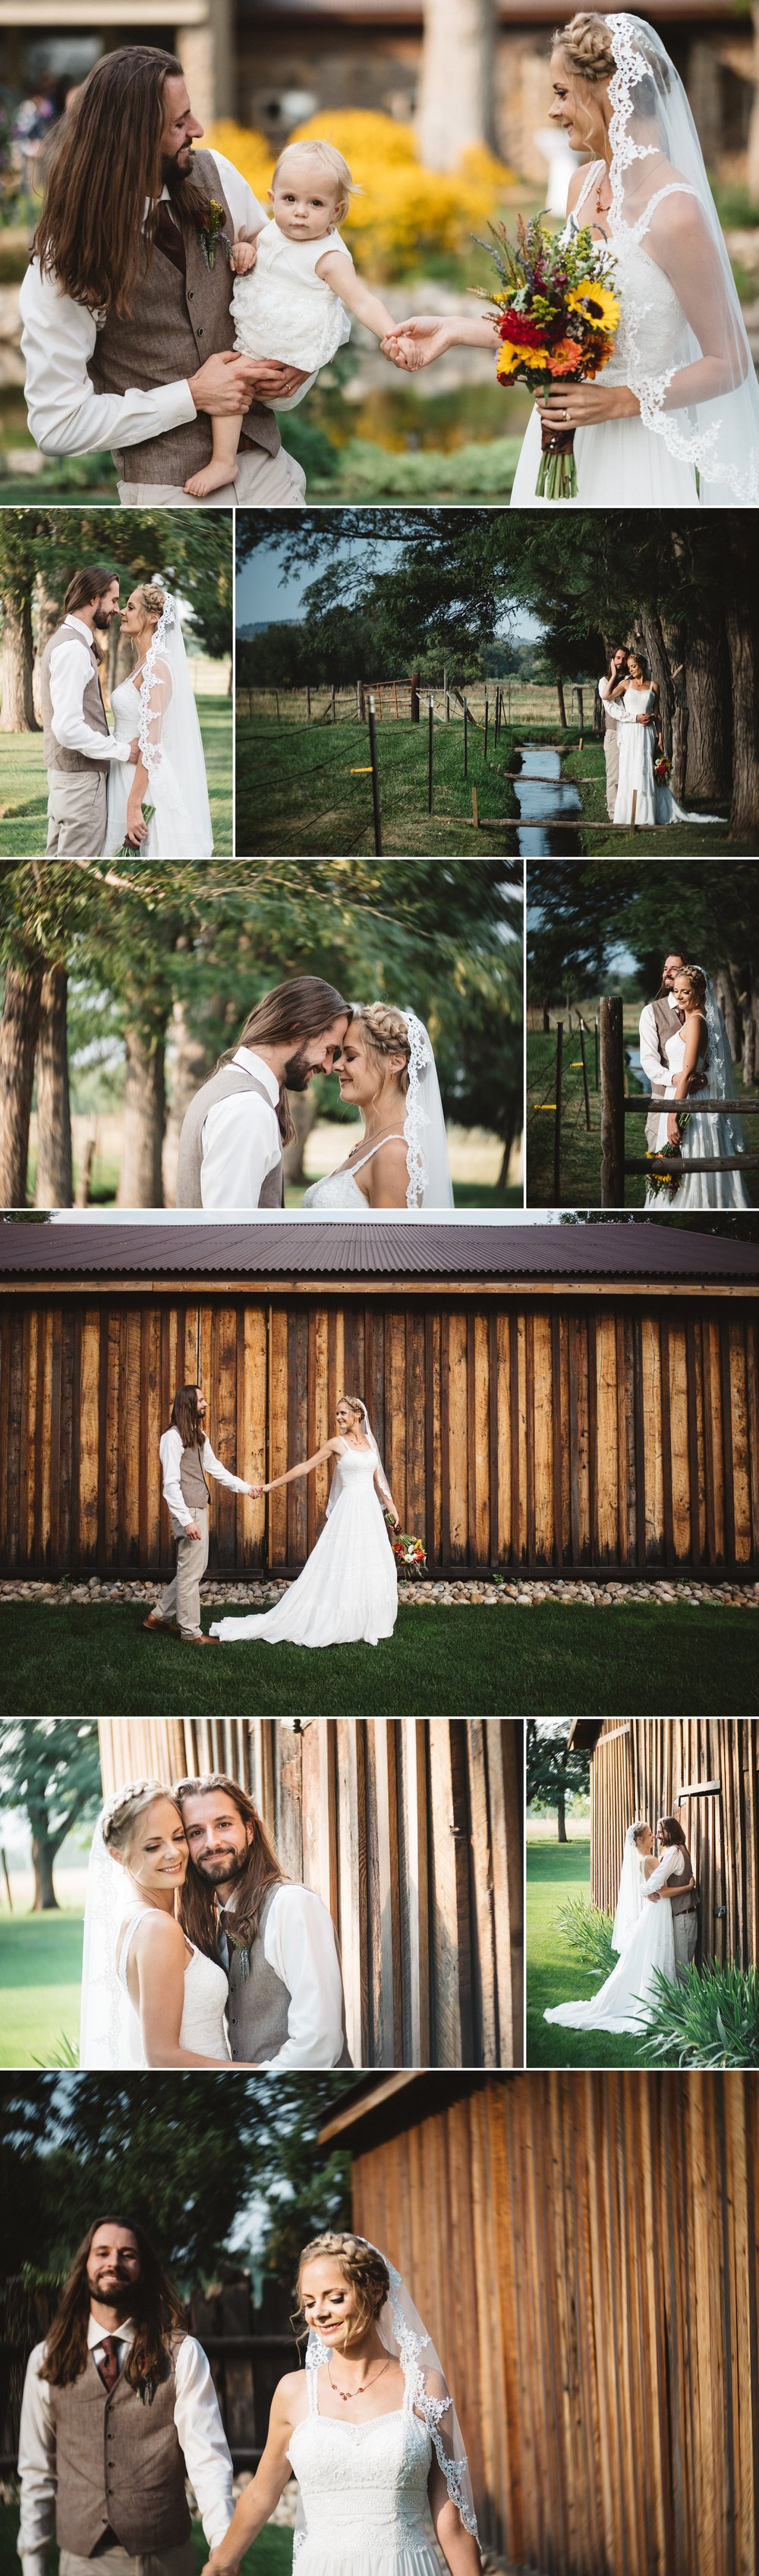 Couples portraits at Schupe Homestead Wedding by Kate Merrill Photo